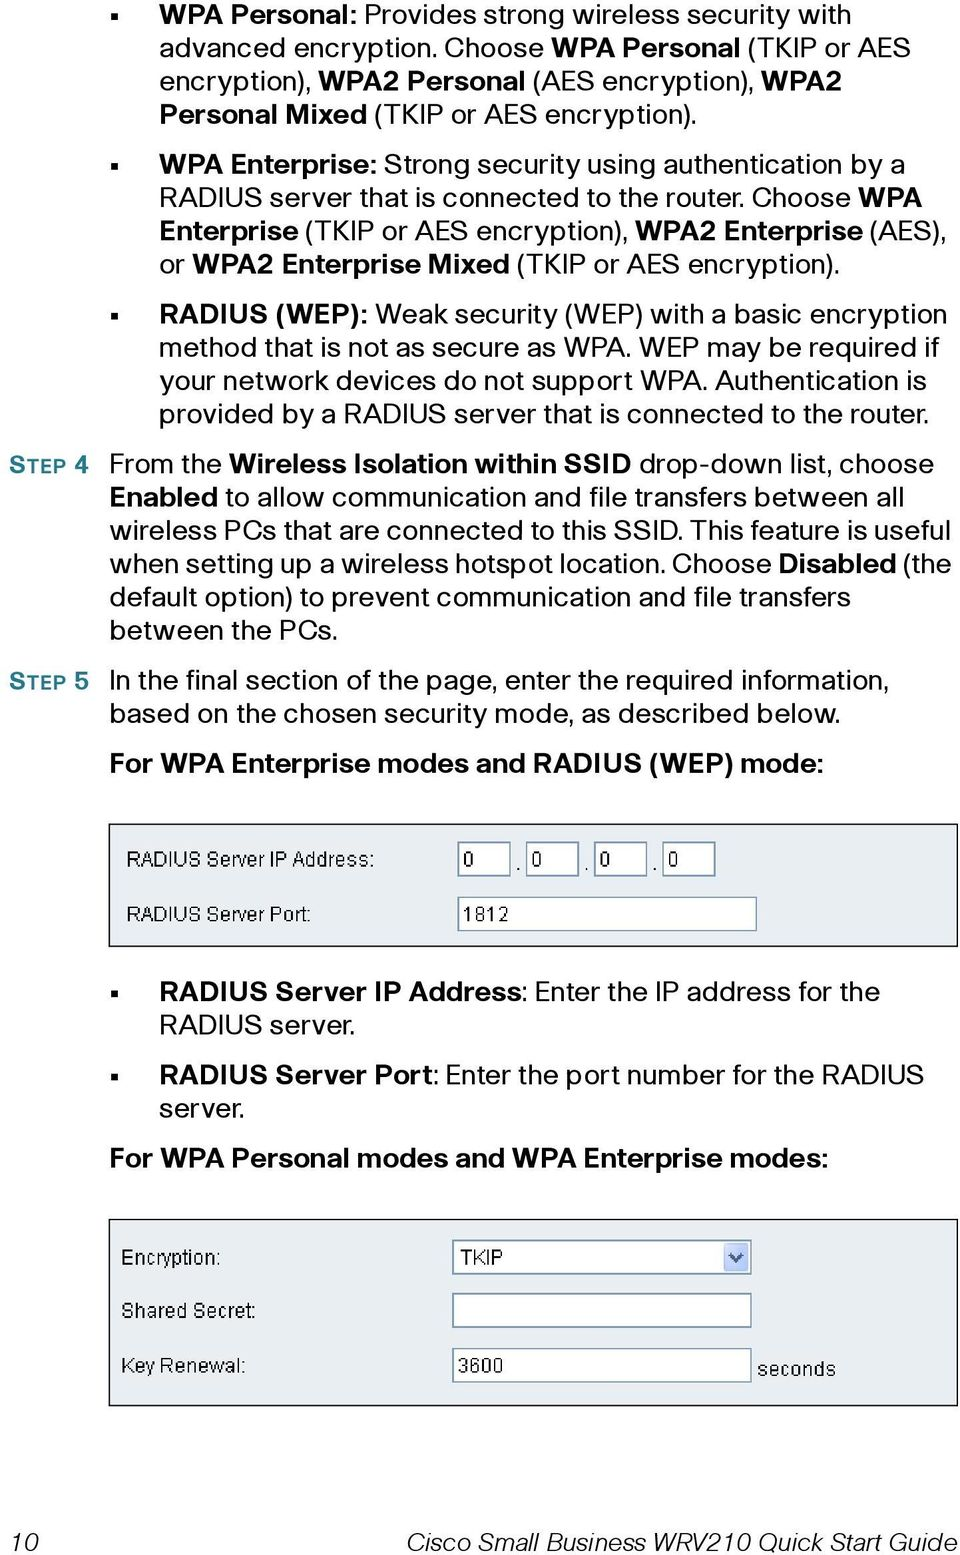 WPA Enterprise: Strong security using authentication by a RADIUS server that is connected to the router.